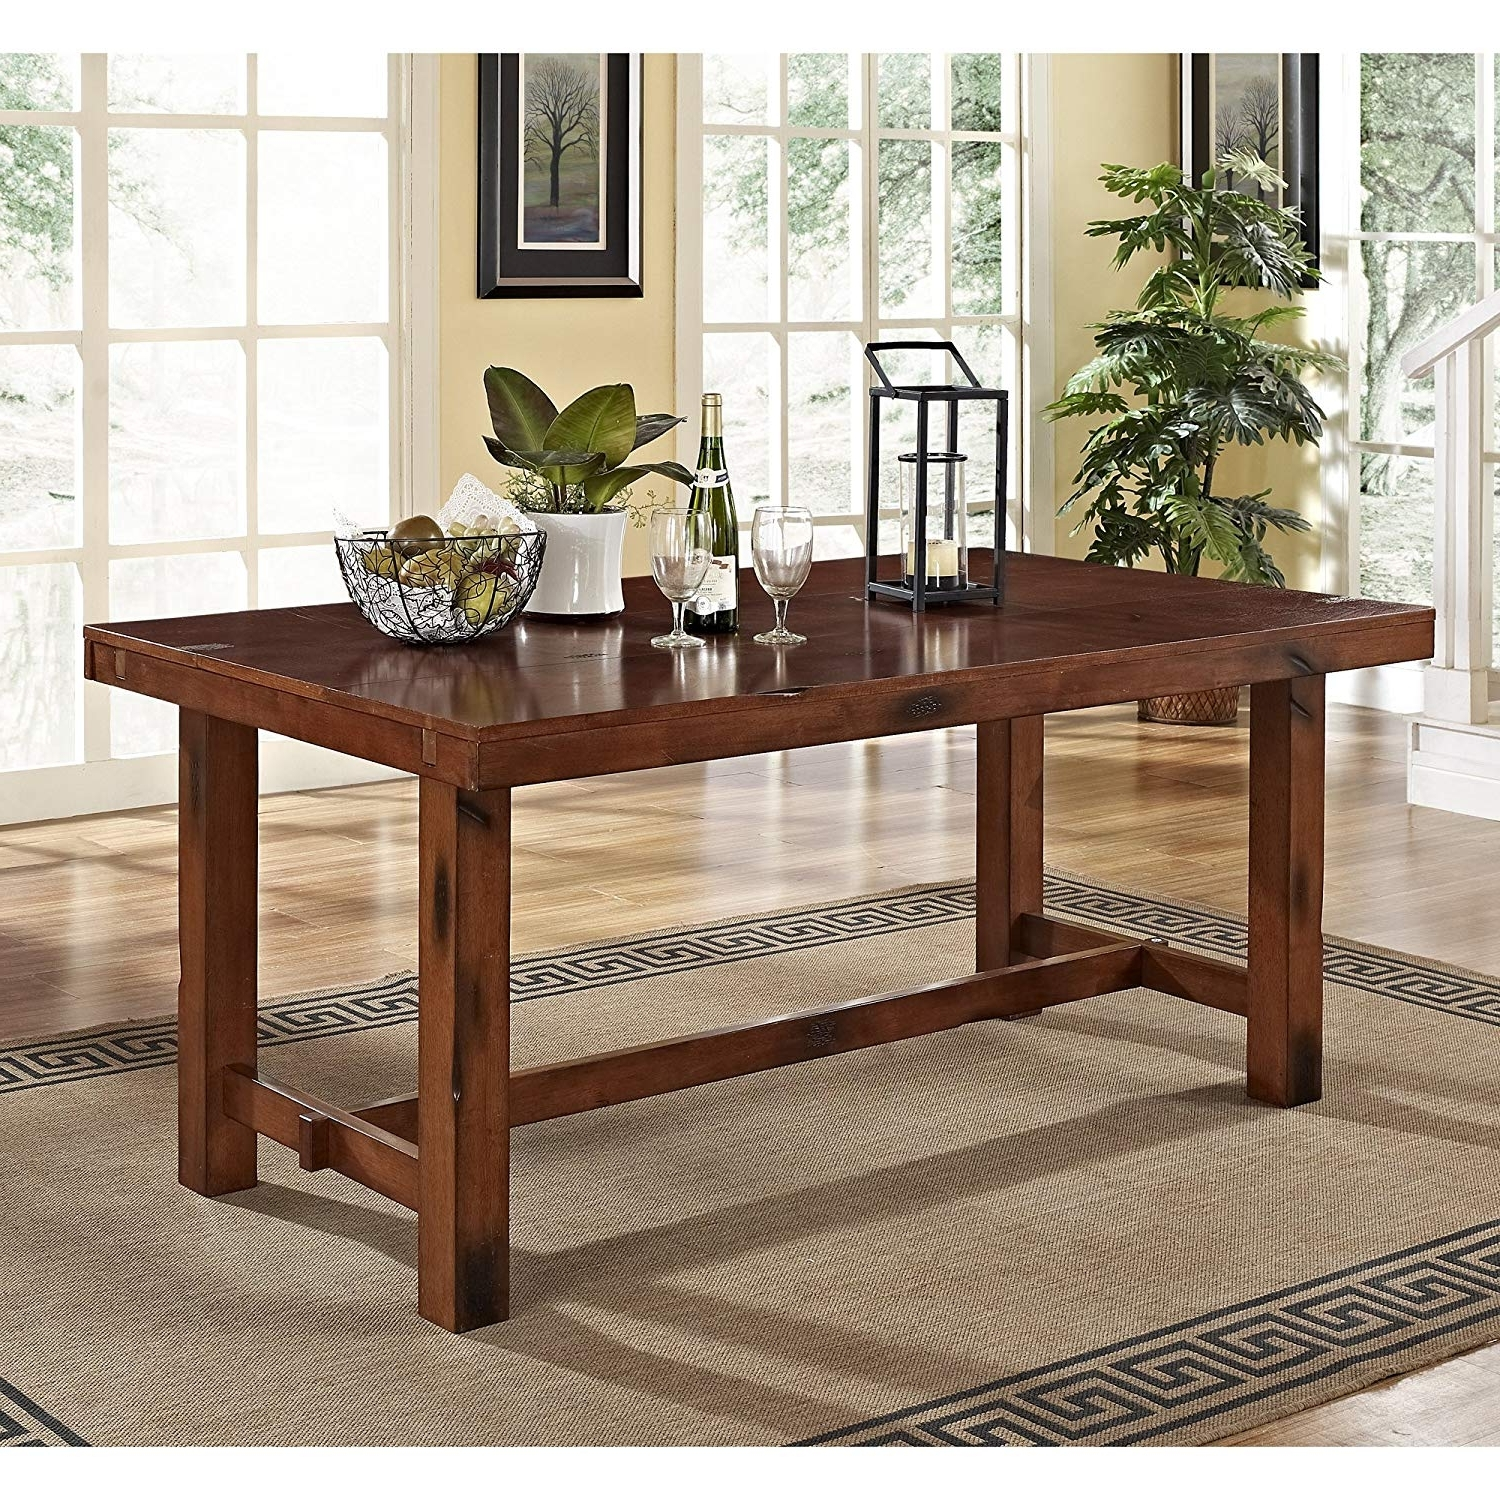 "Solid Wood Dining Tables Pertaining To Most Popular Walker Edison 96"" Solid Wood Dark Oak Dining Table (View 6 of 25)"